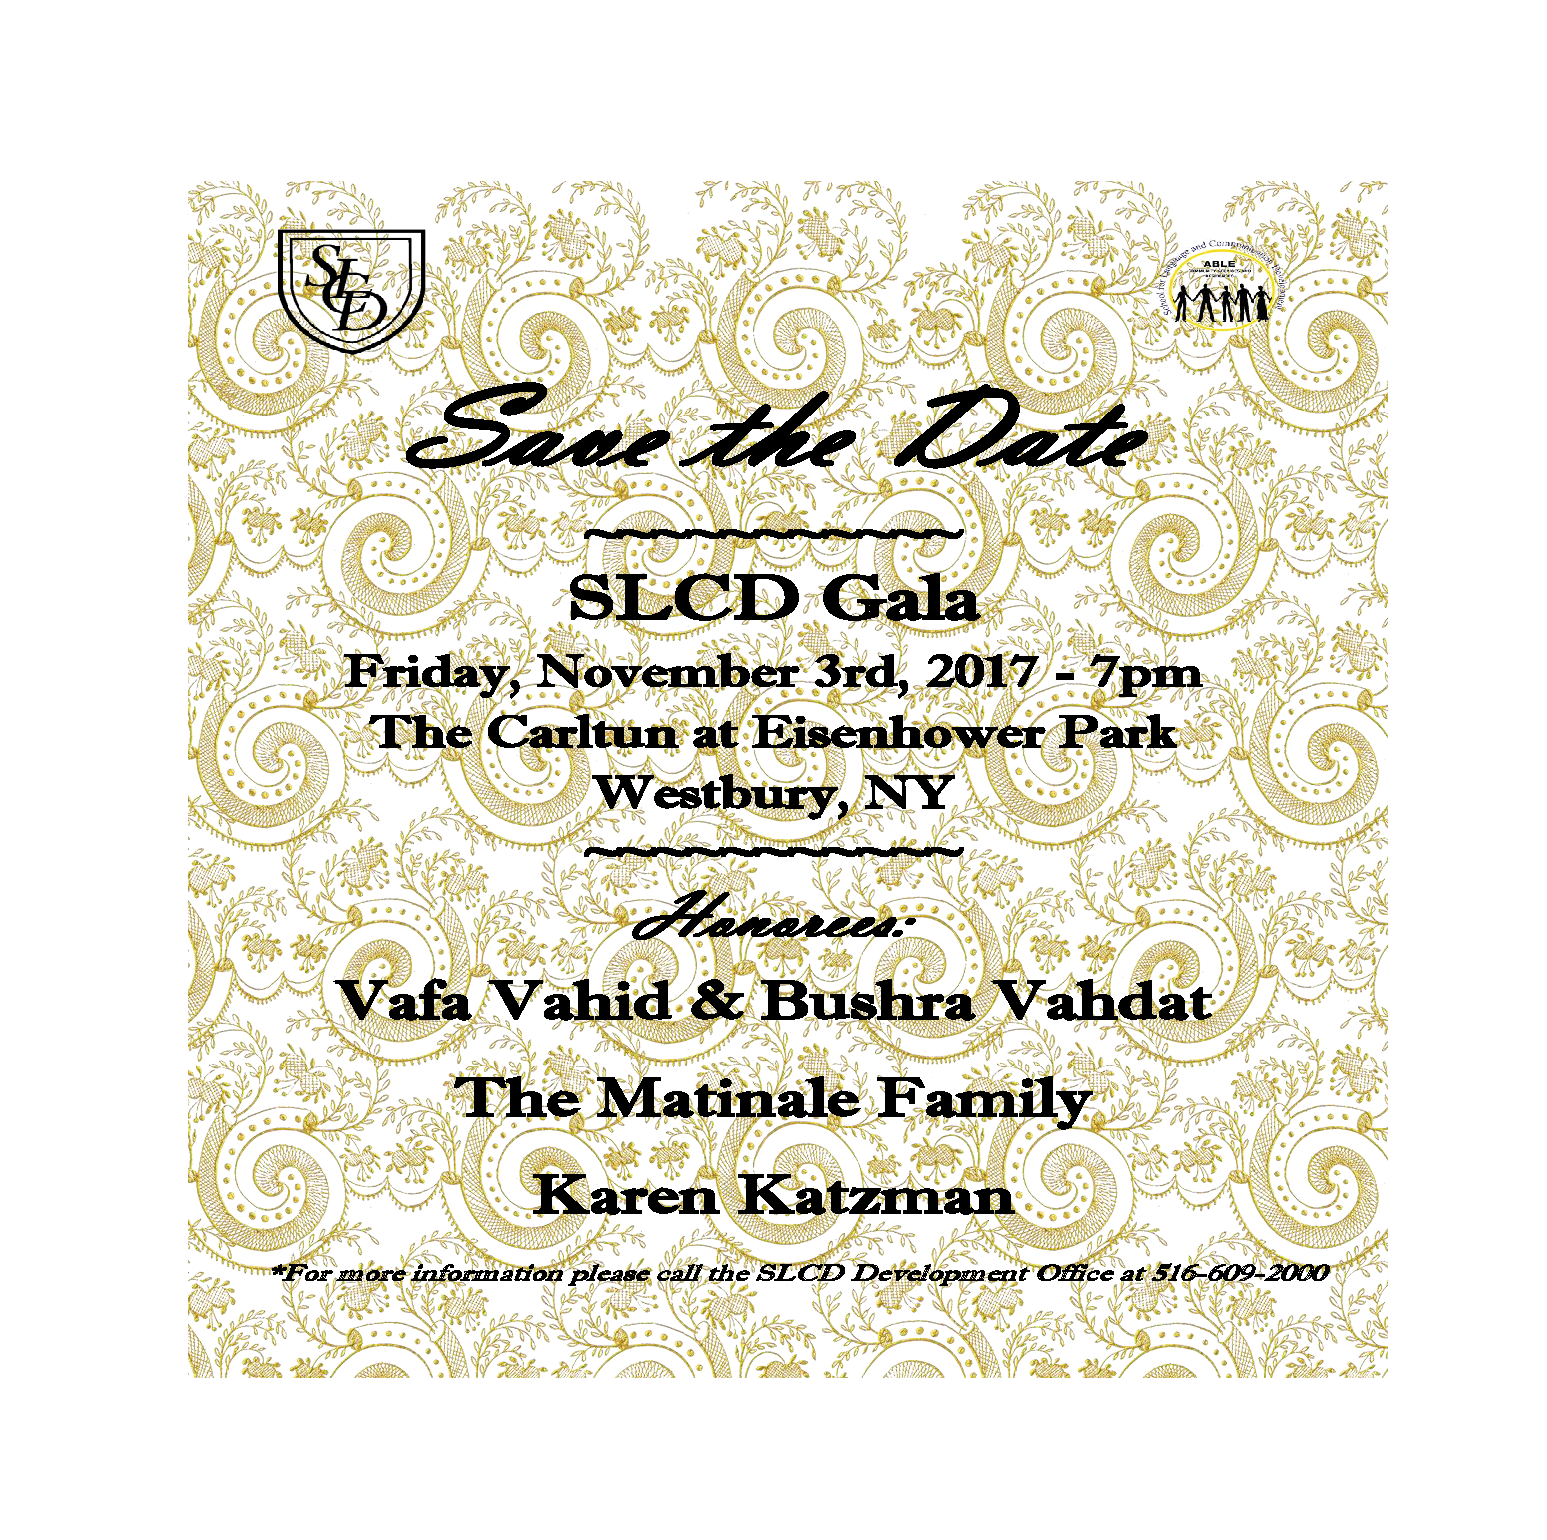 Save the Date - SLCD 2017 Gala